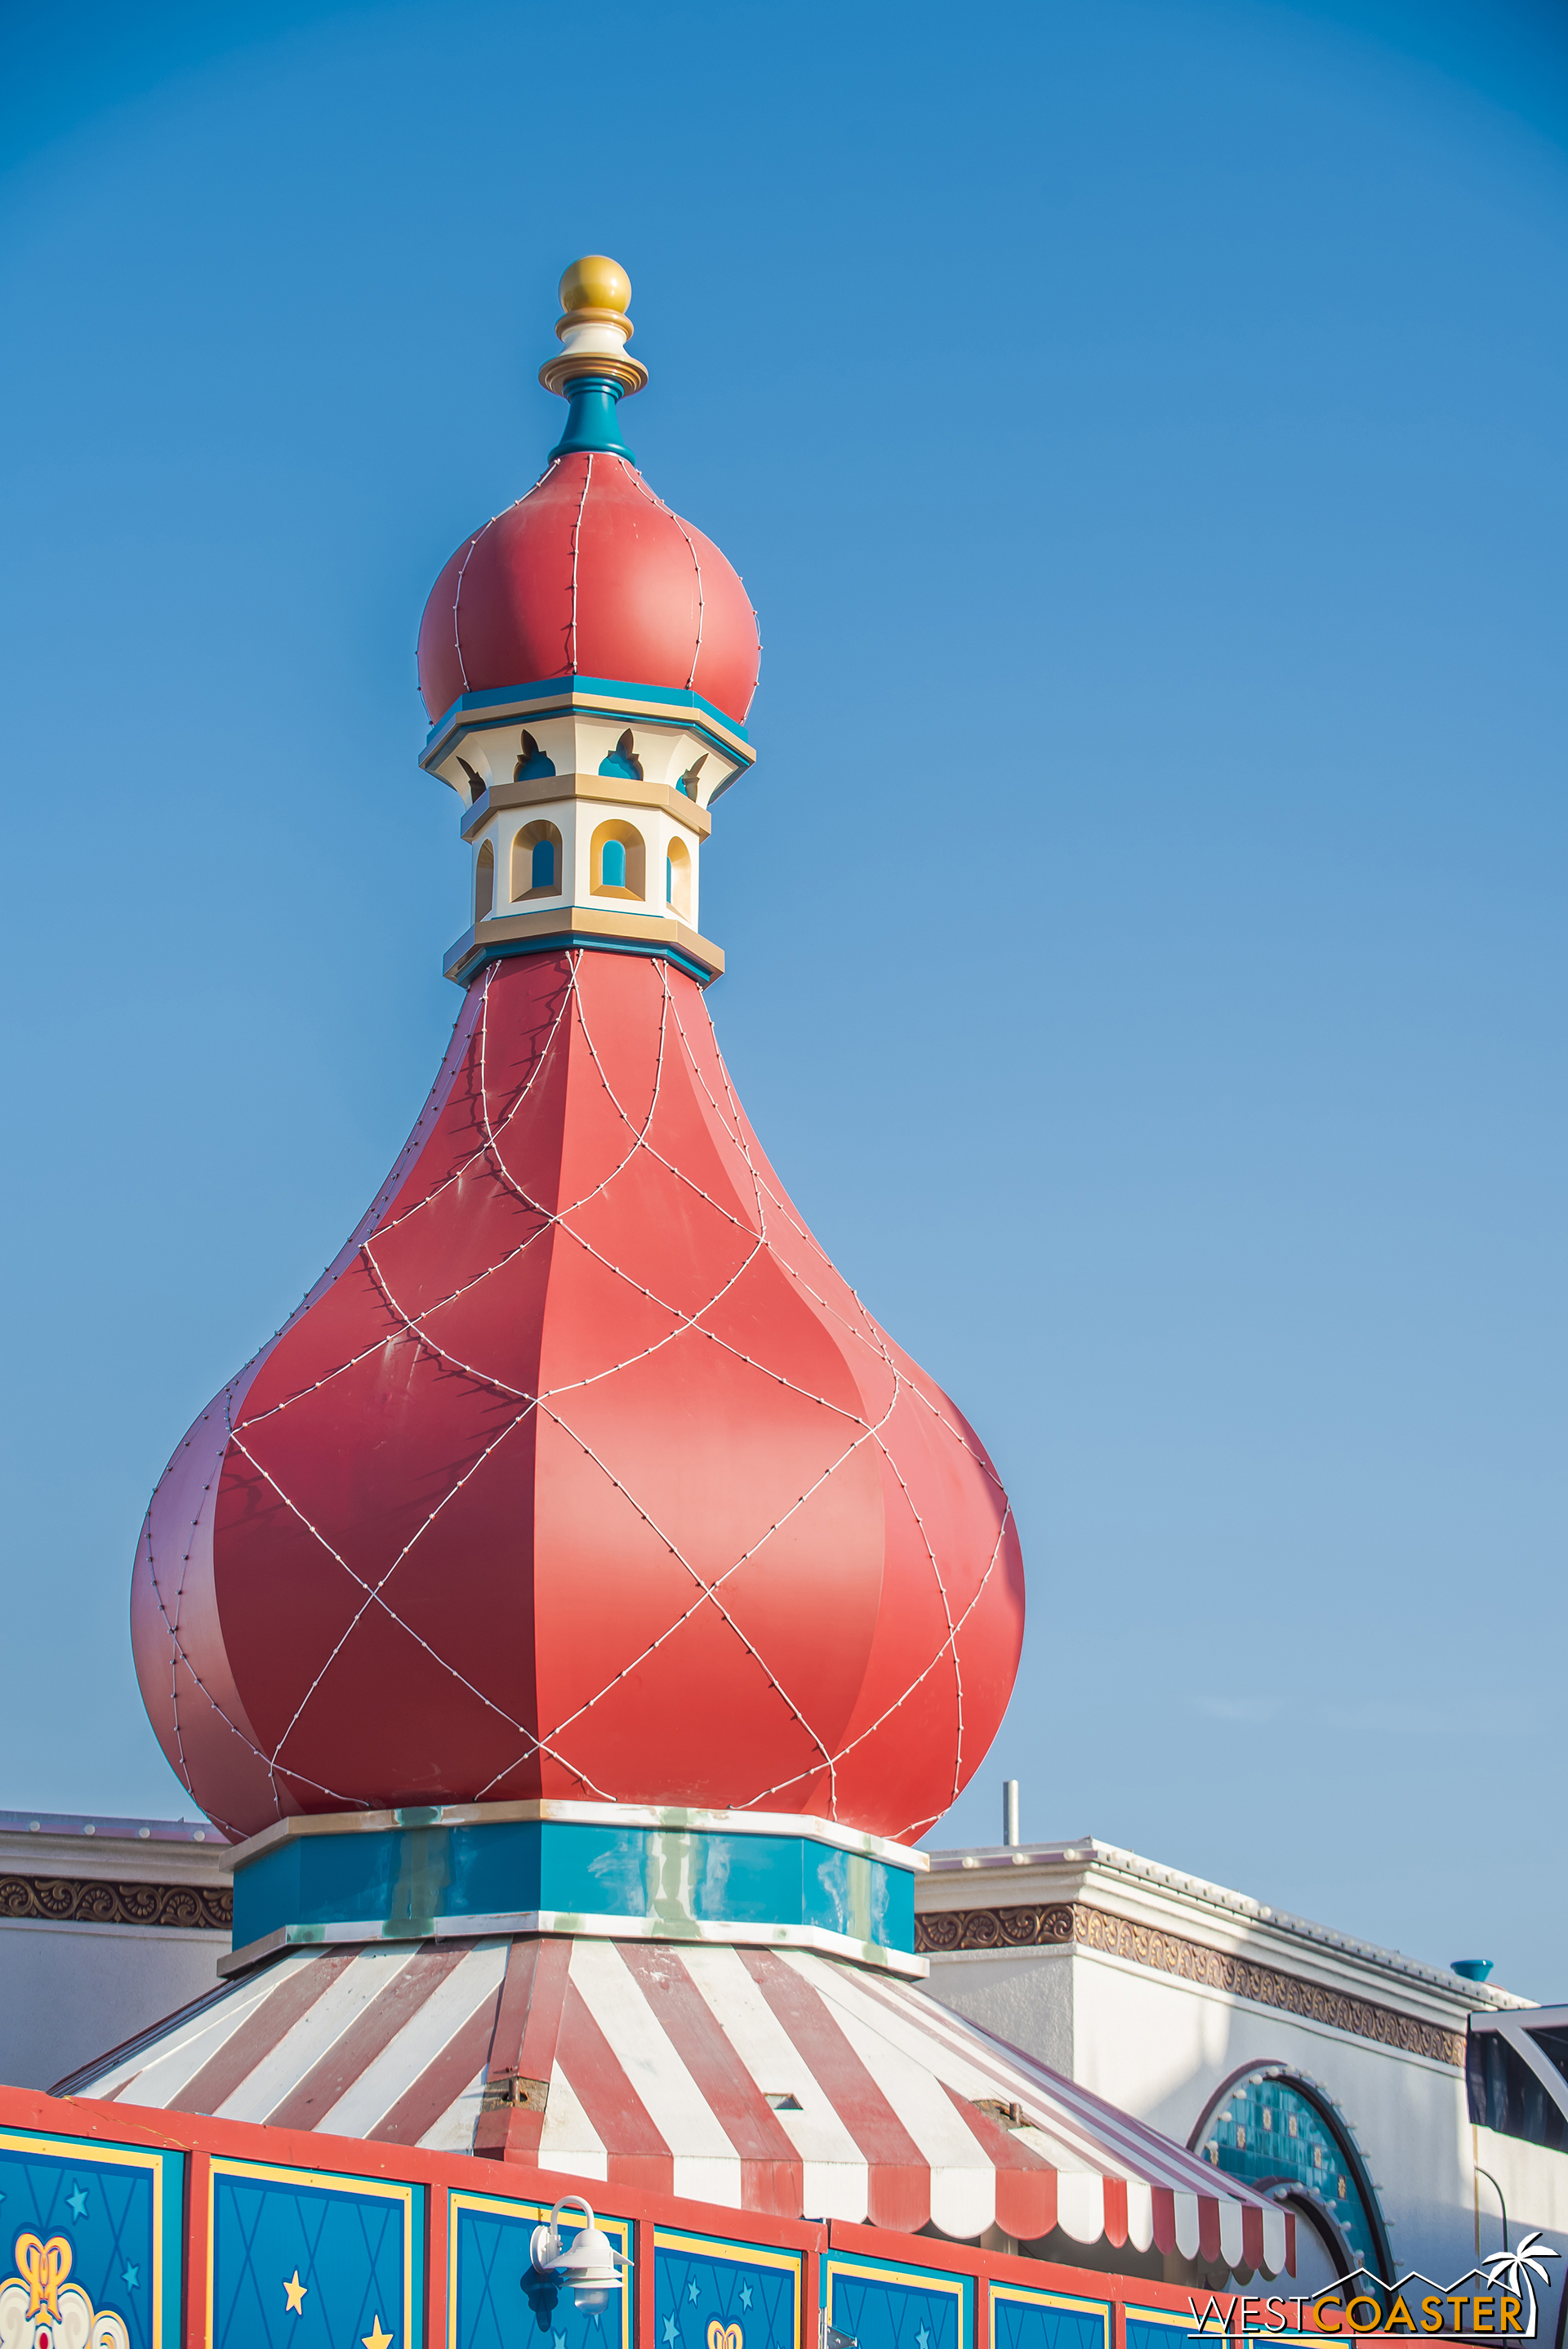 The front of Knick Knacks has a roof spire too.